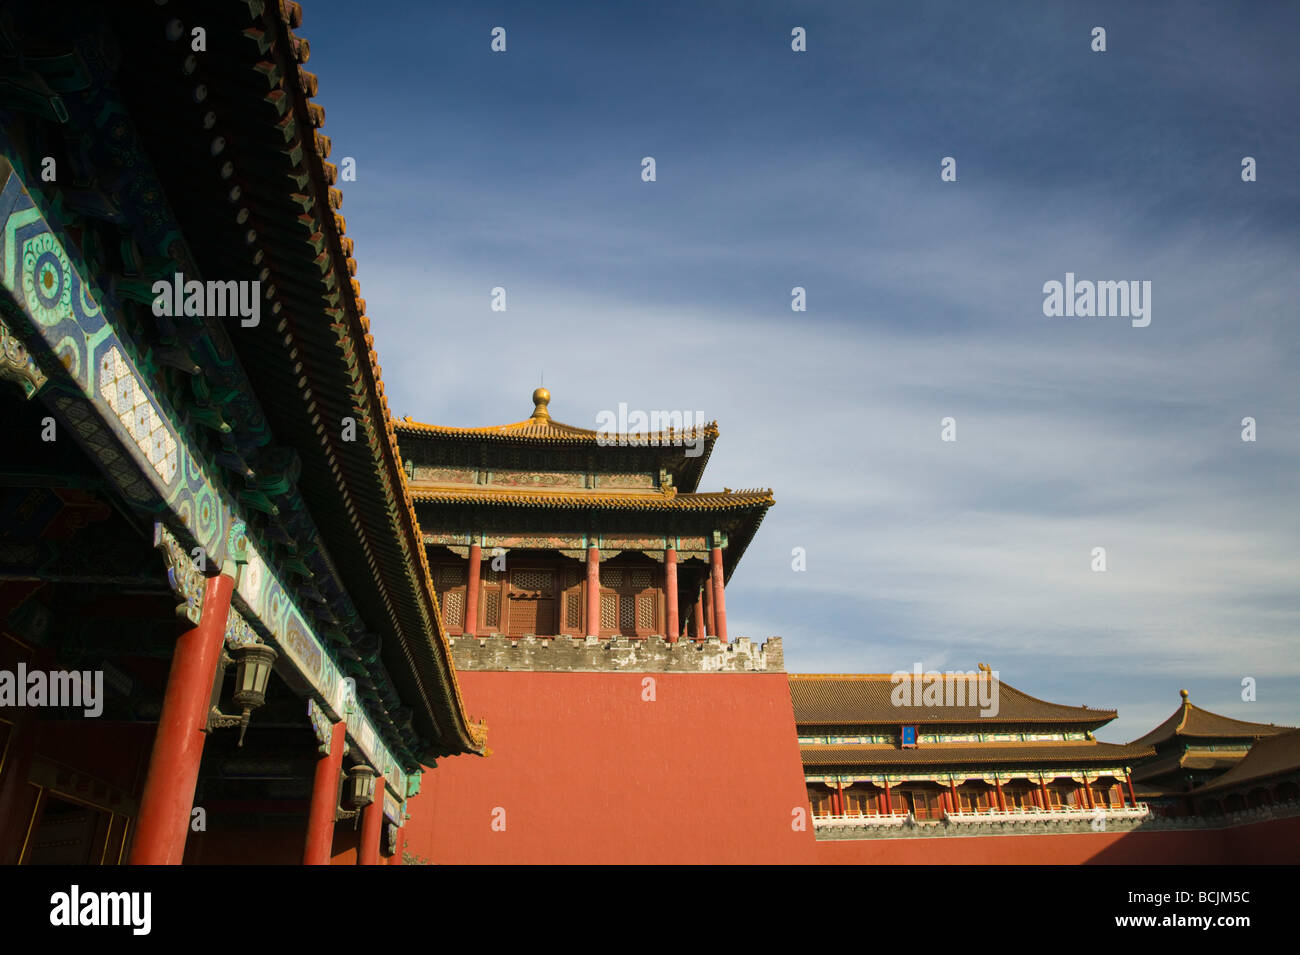 China, Beijing, Forbidden City, Meridian Gate - Stock Image